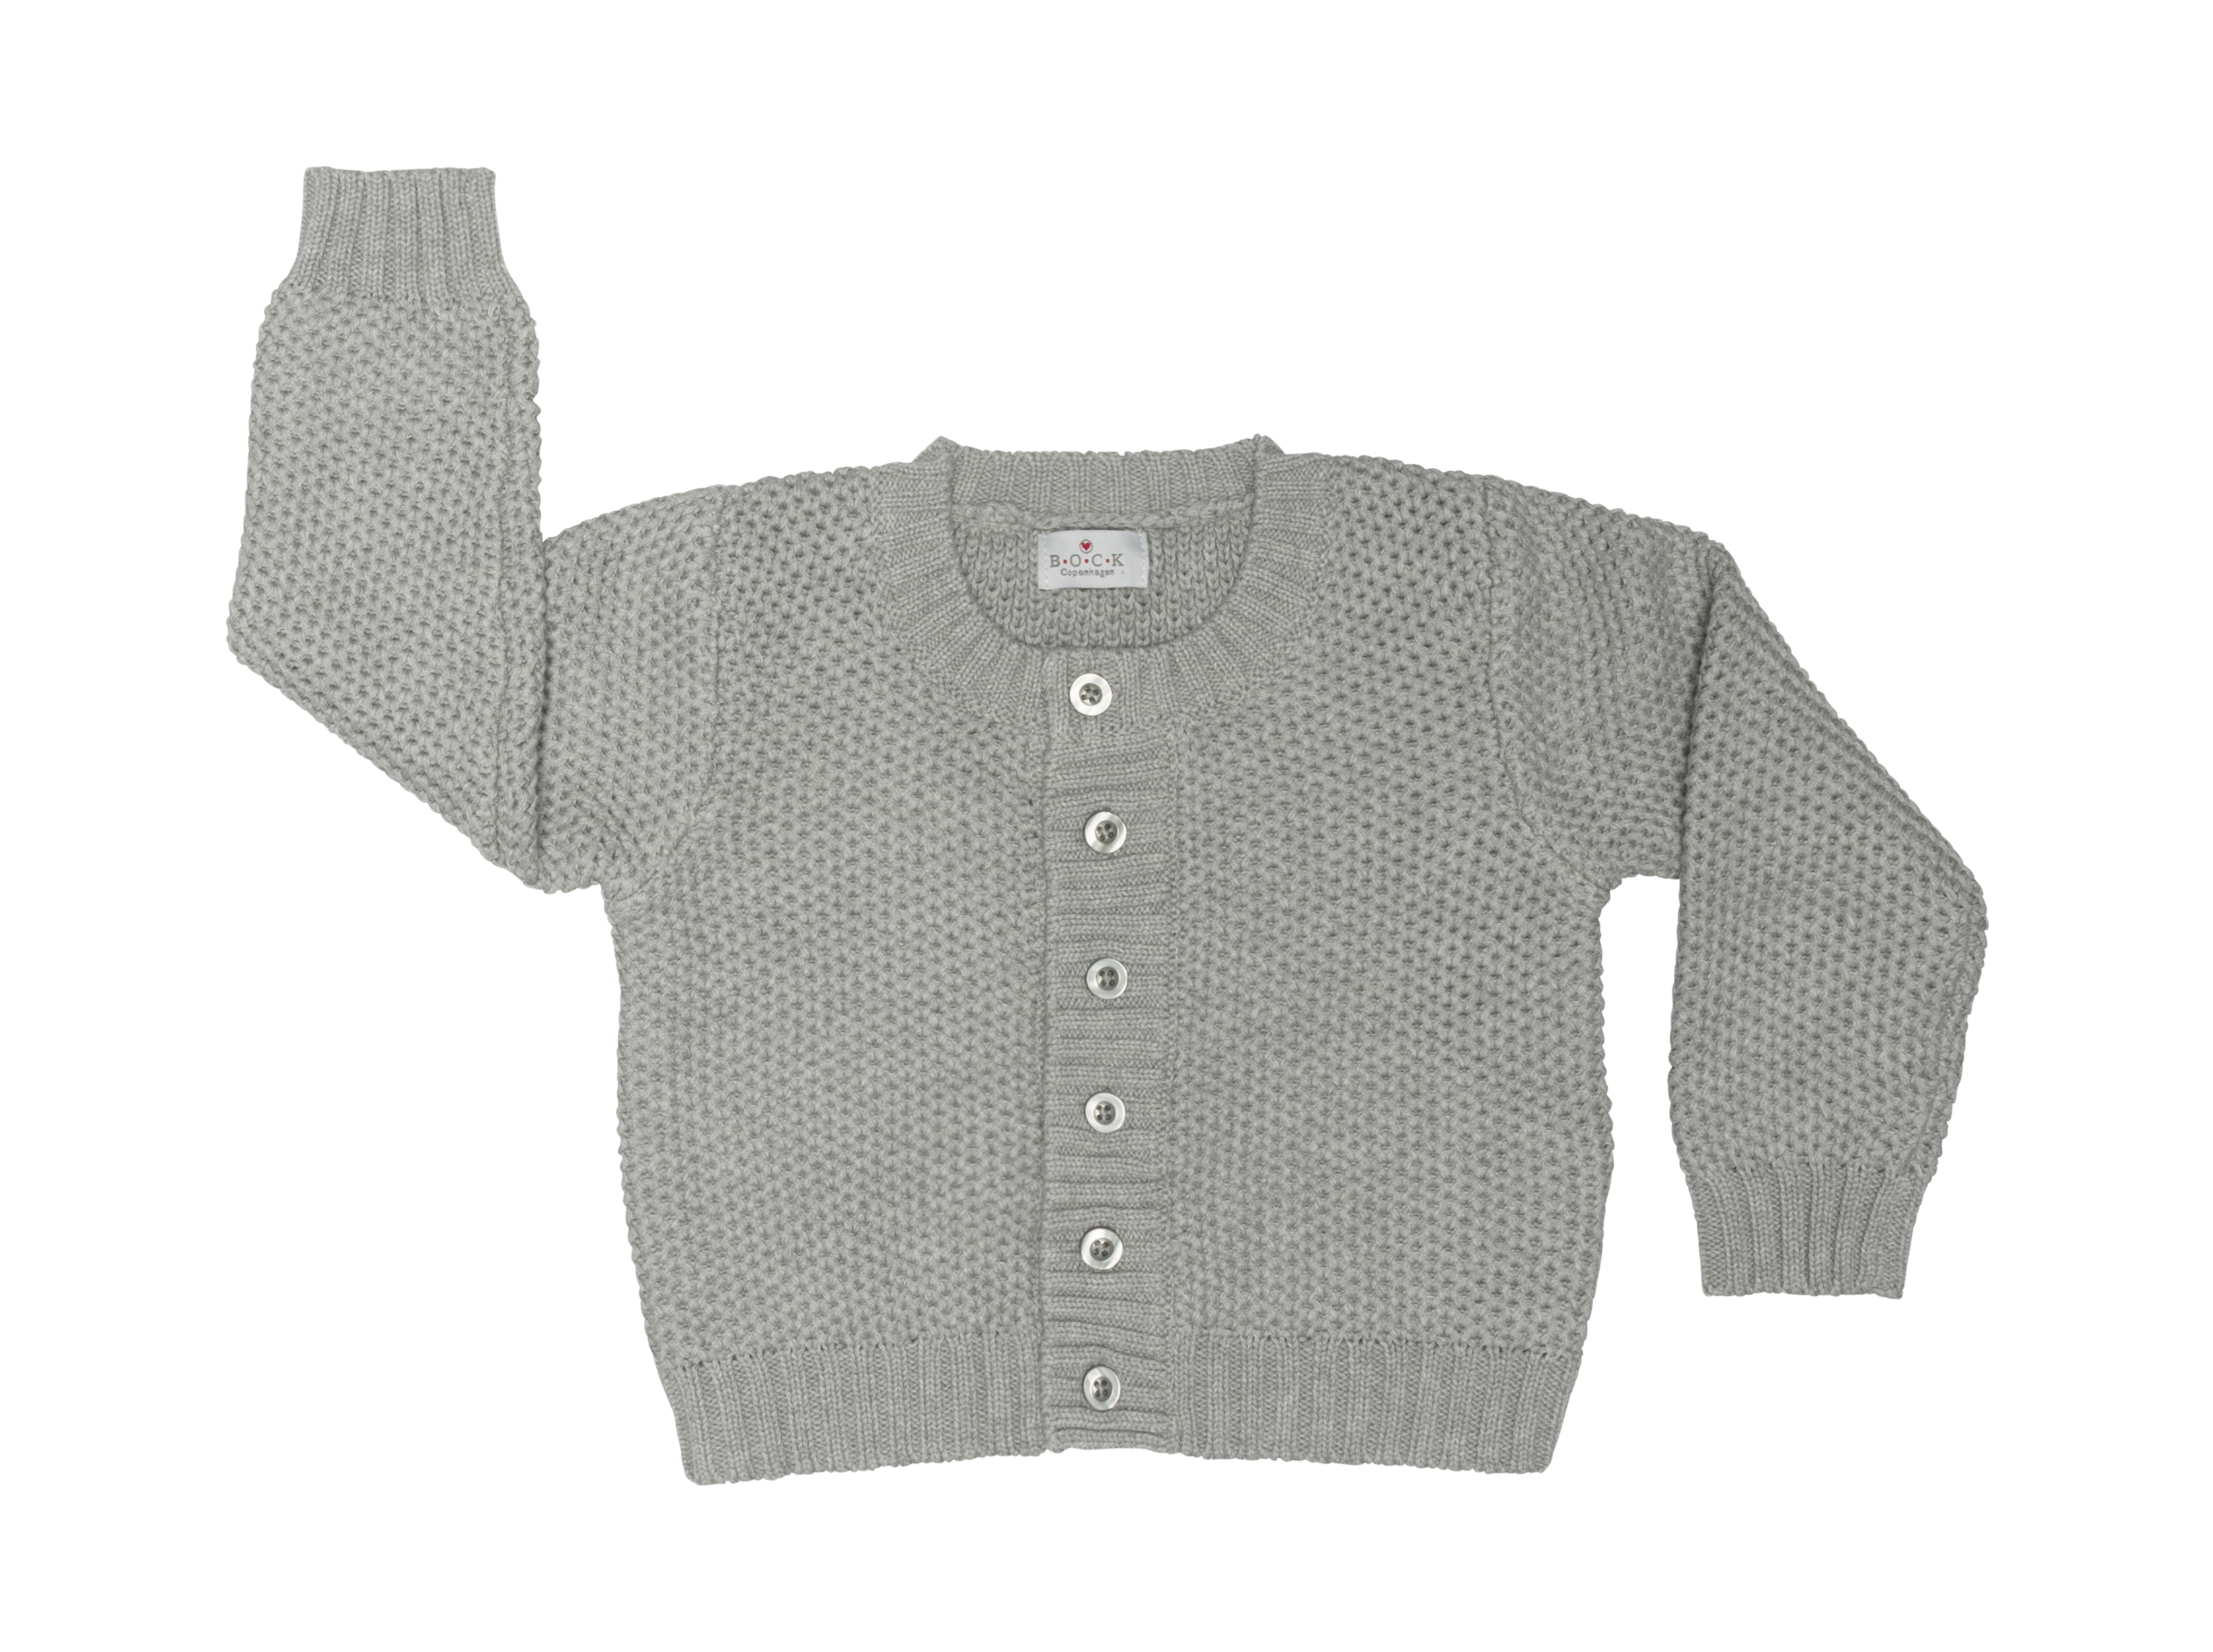 Shop at Macy's for Baby Sweaters, Baby Sweaters For Girls and Baby Sweaters For Boys! Macy's Presents: The Edit- A curated mix of fashion and inspiration Check It Out. First Impressions Cotton Cardigan Sweater, Baby Girls or Baby Boys, Created for Macy's.